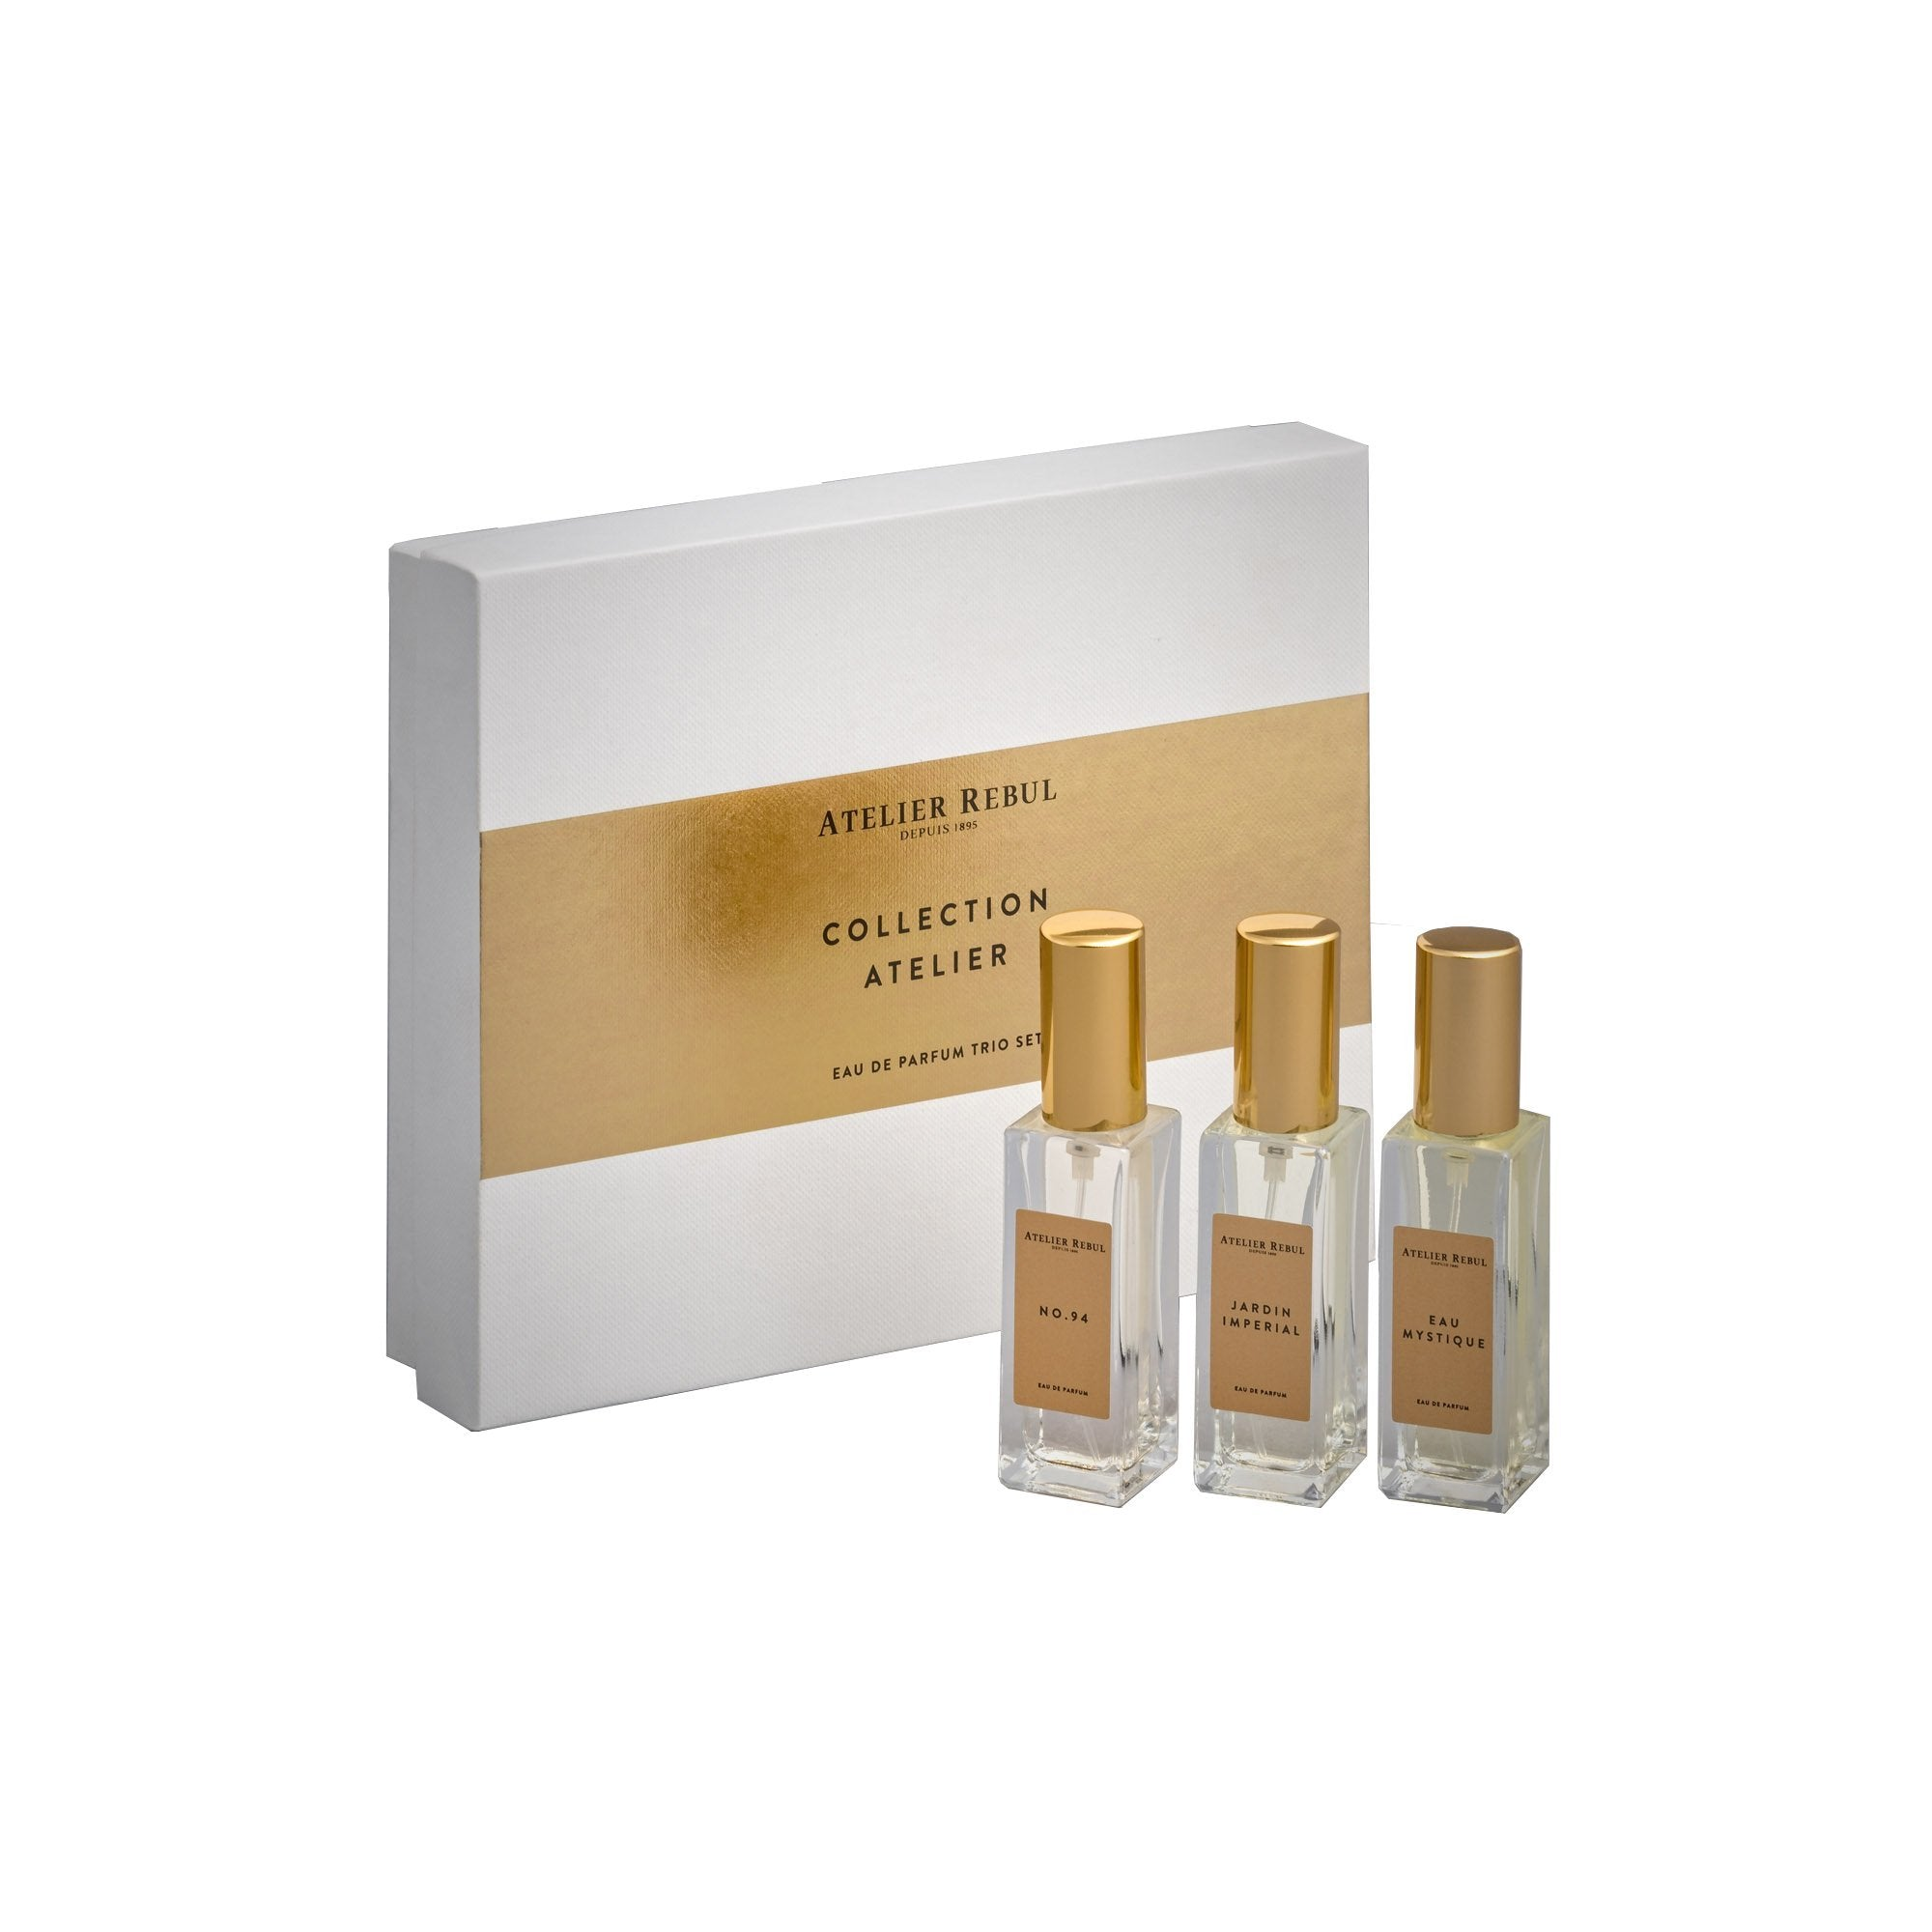 Collection Atelier Eau de Parfum Trio Giftset